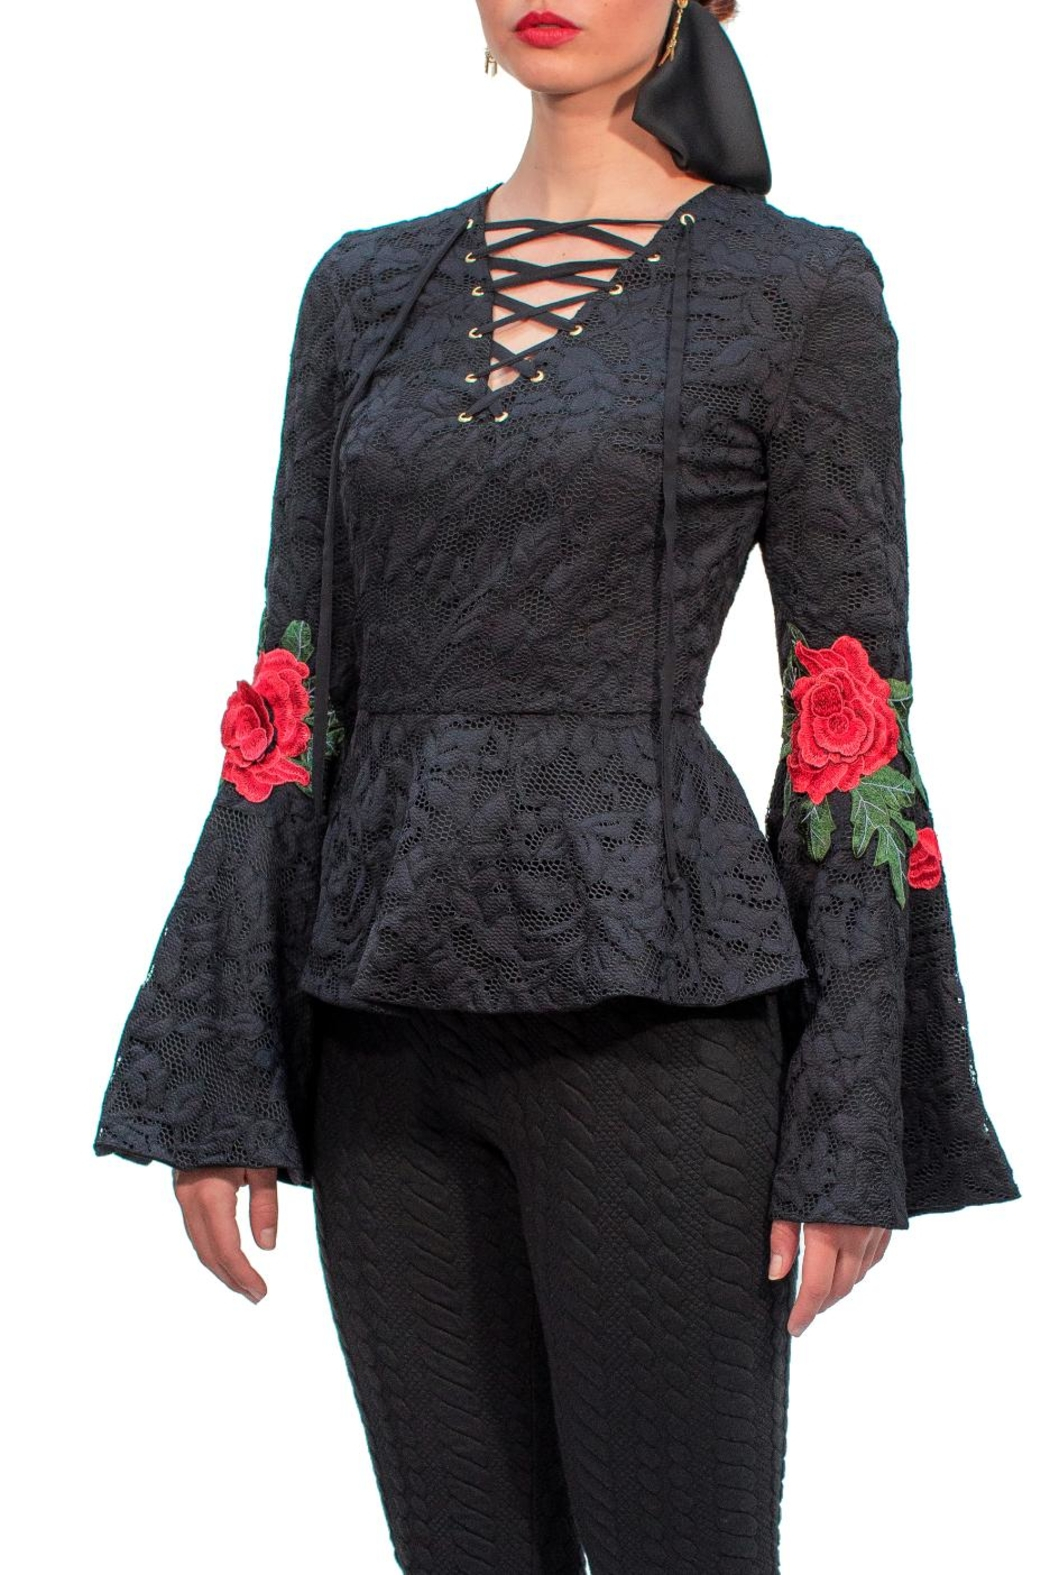 Viesca y Viesca Lace Embroided Blouse - Main Image